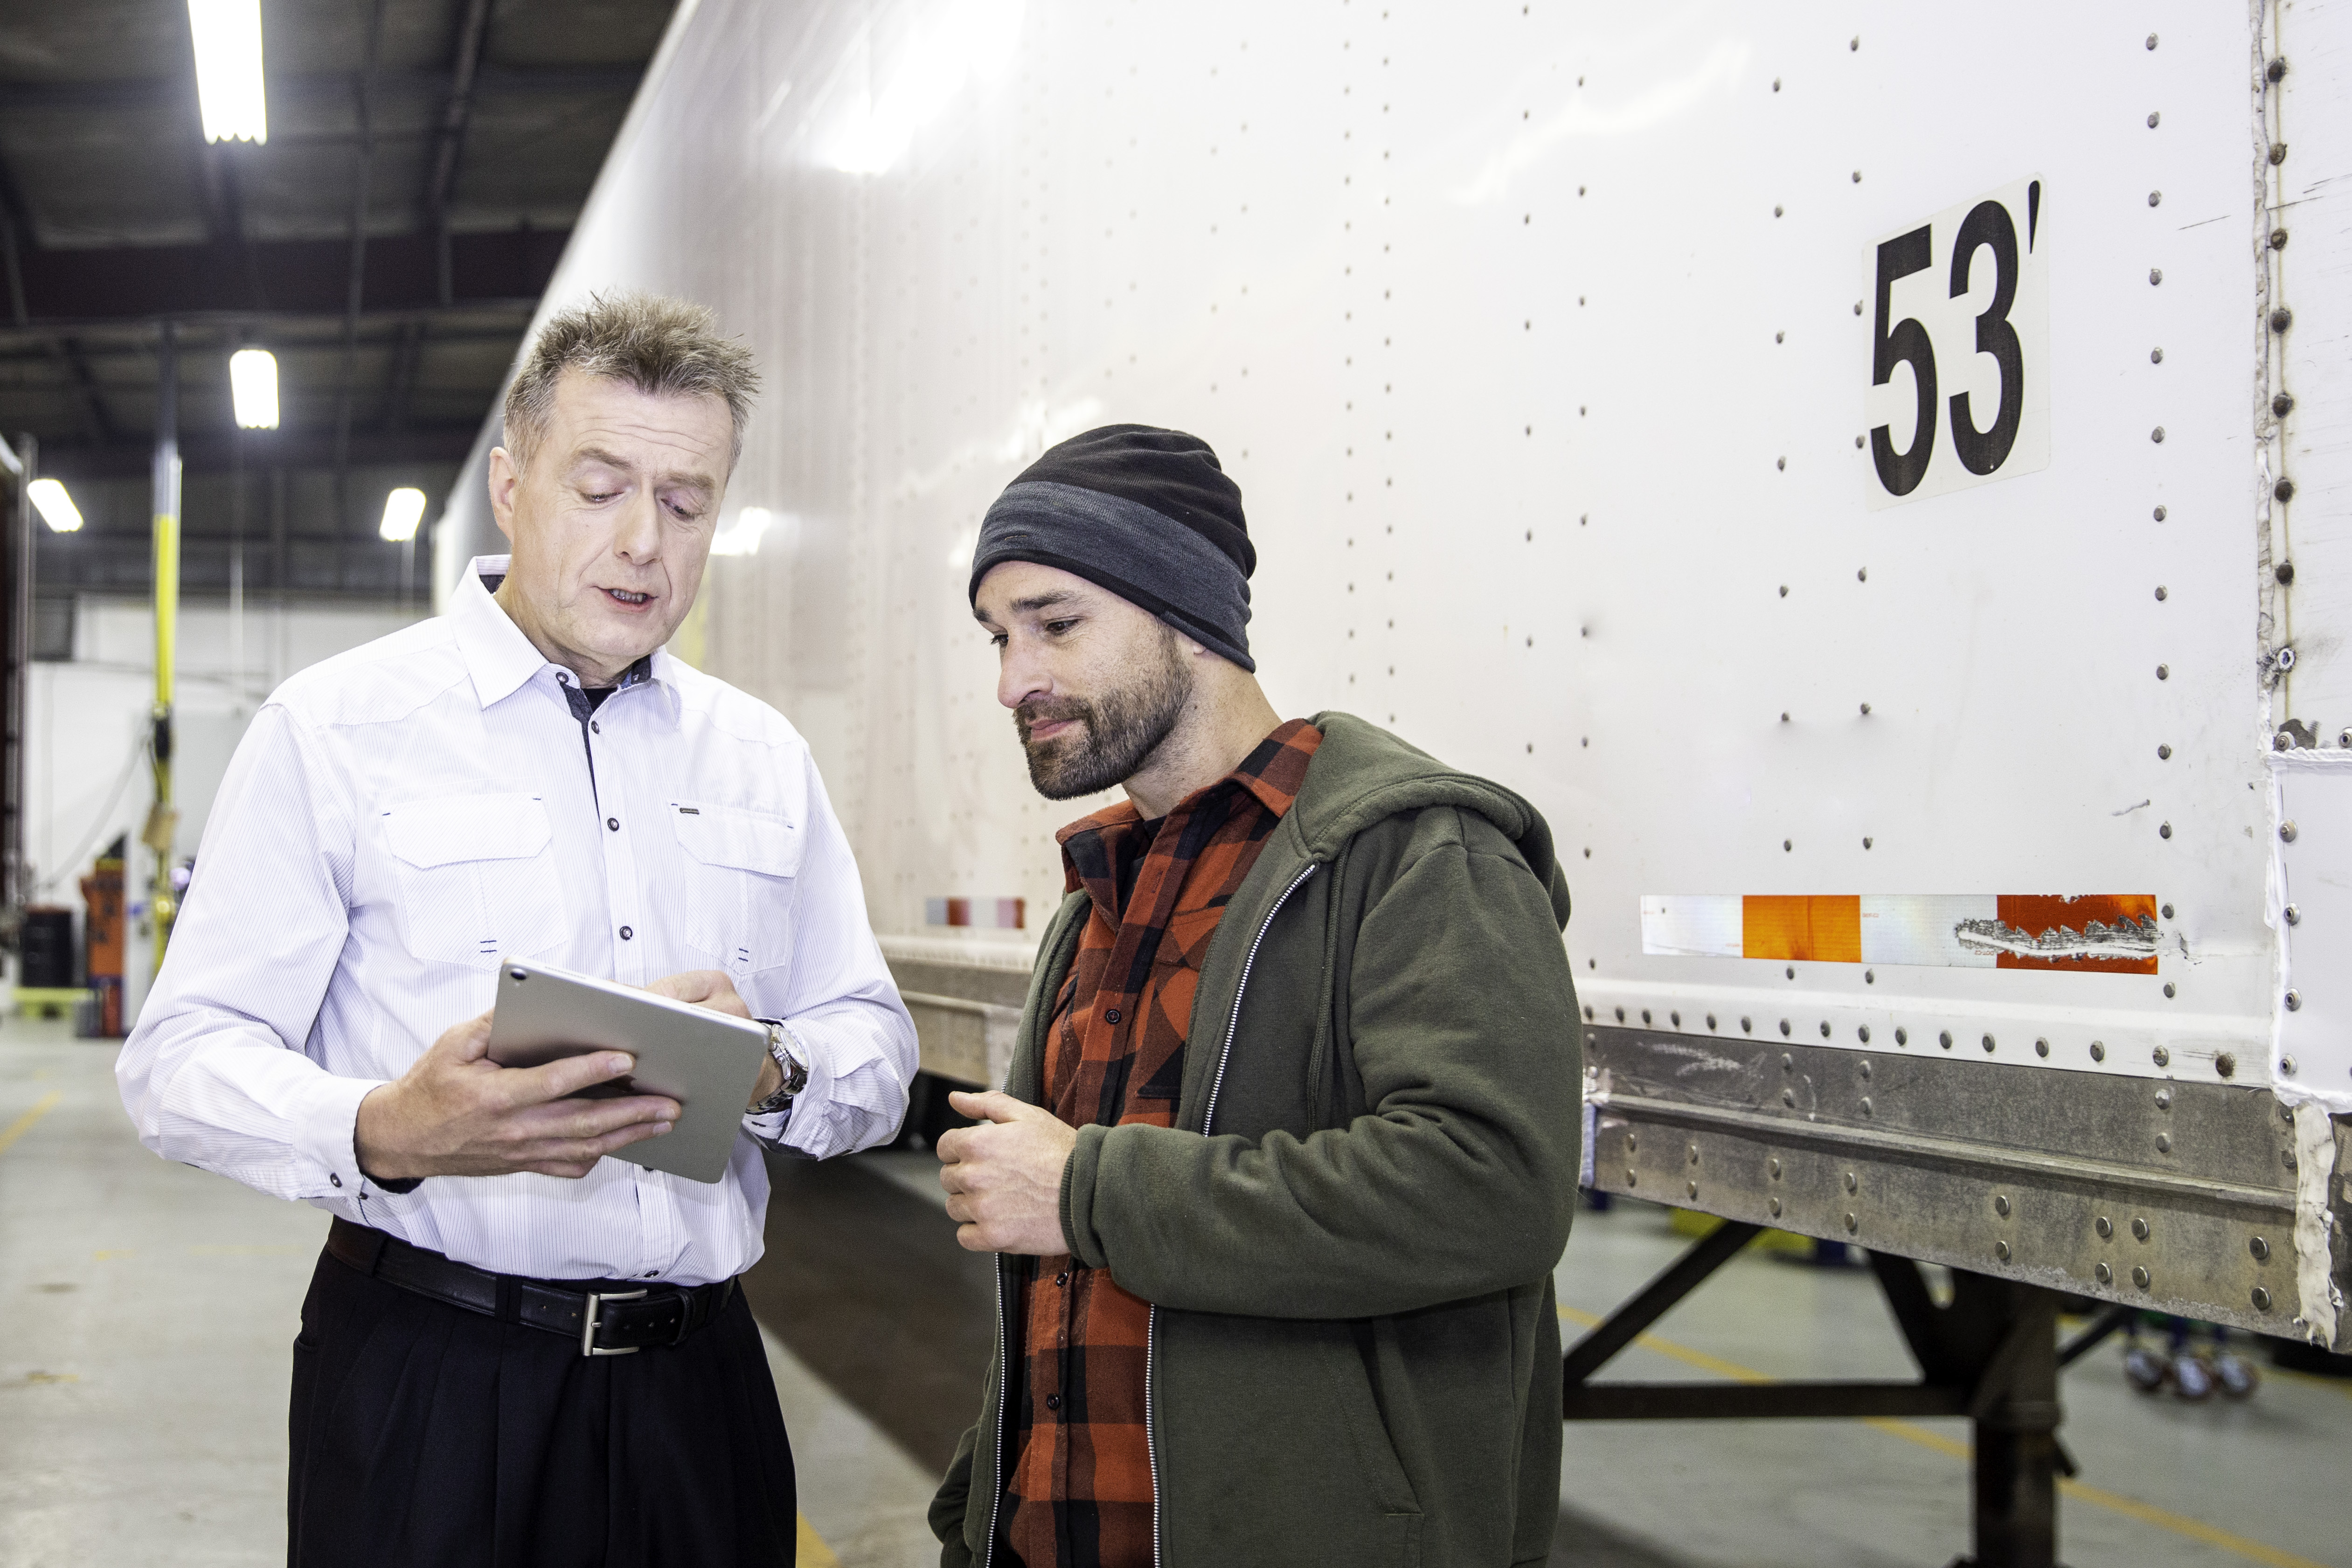 Man teaching other man with Ipad